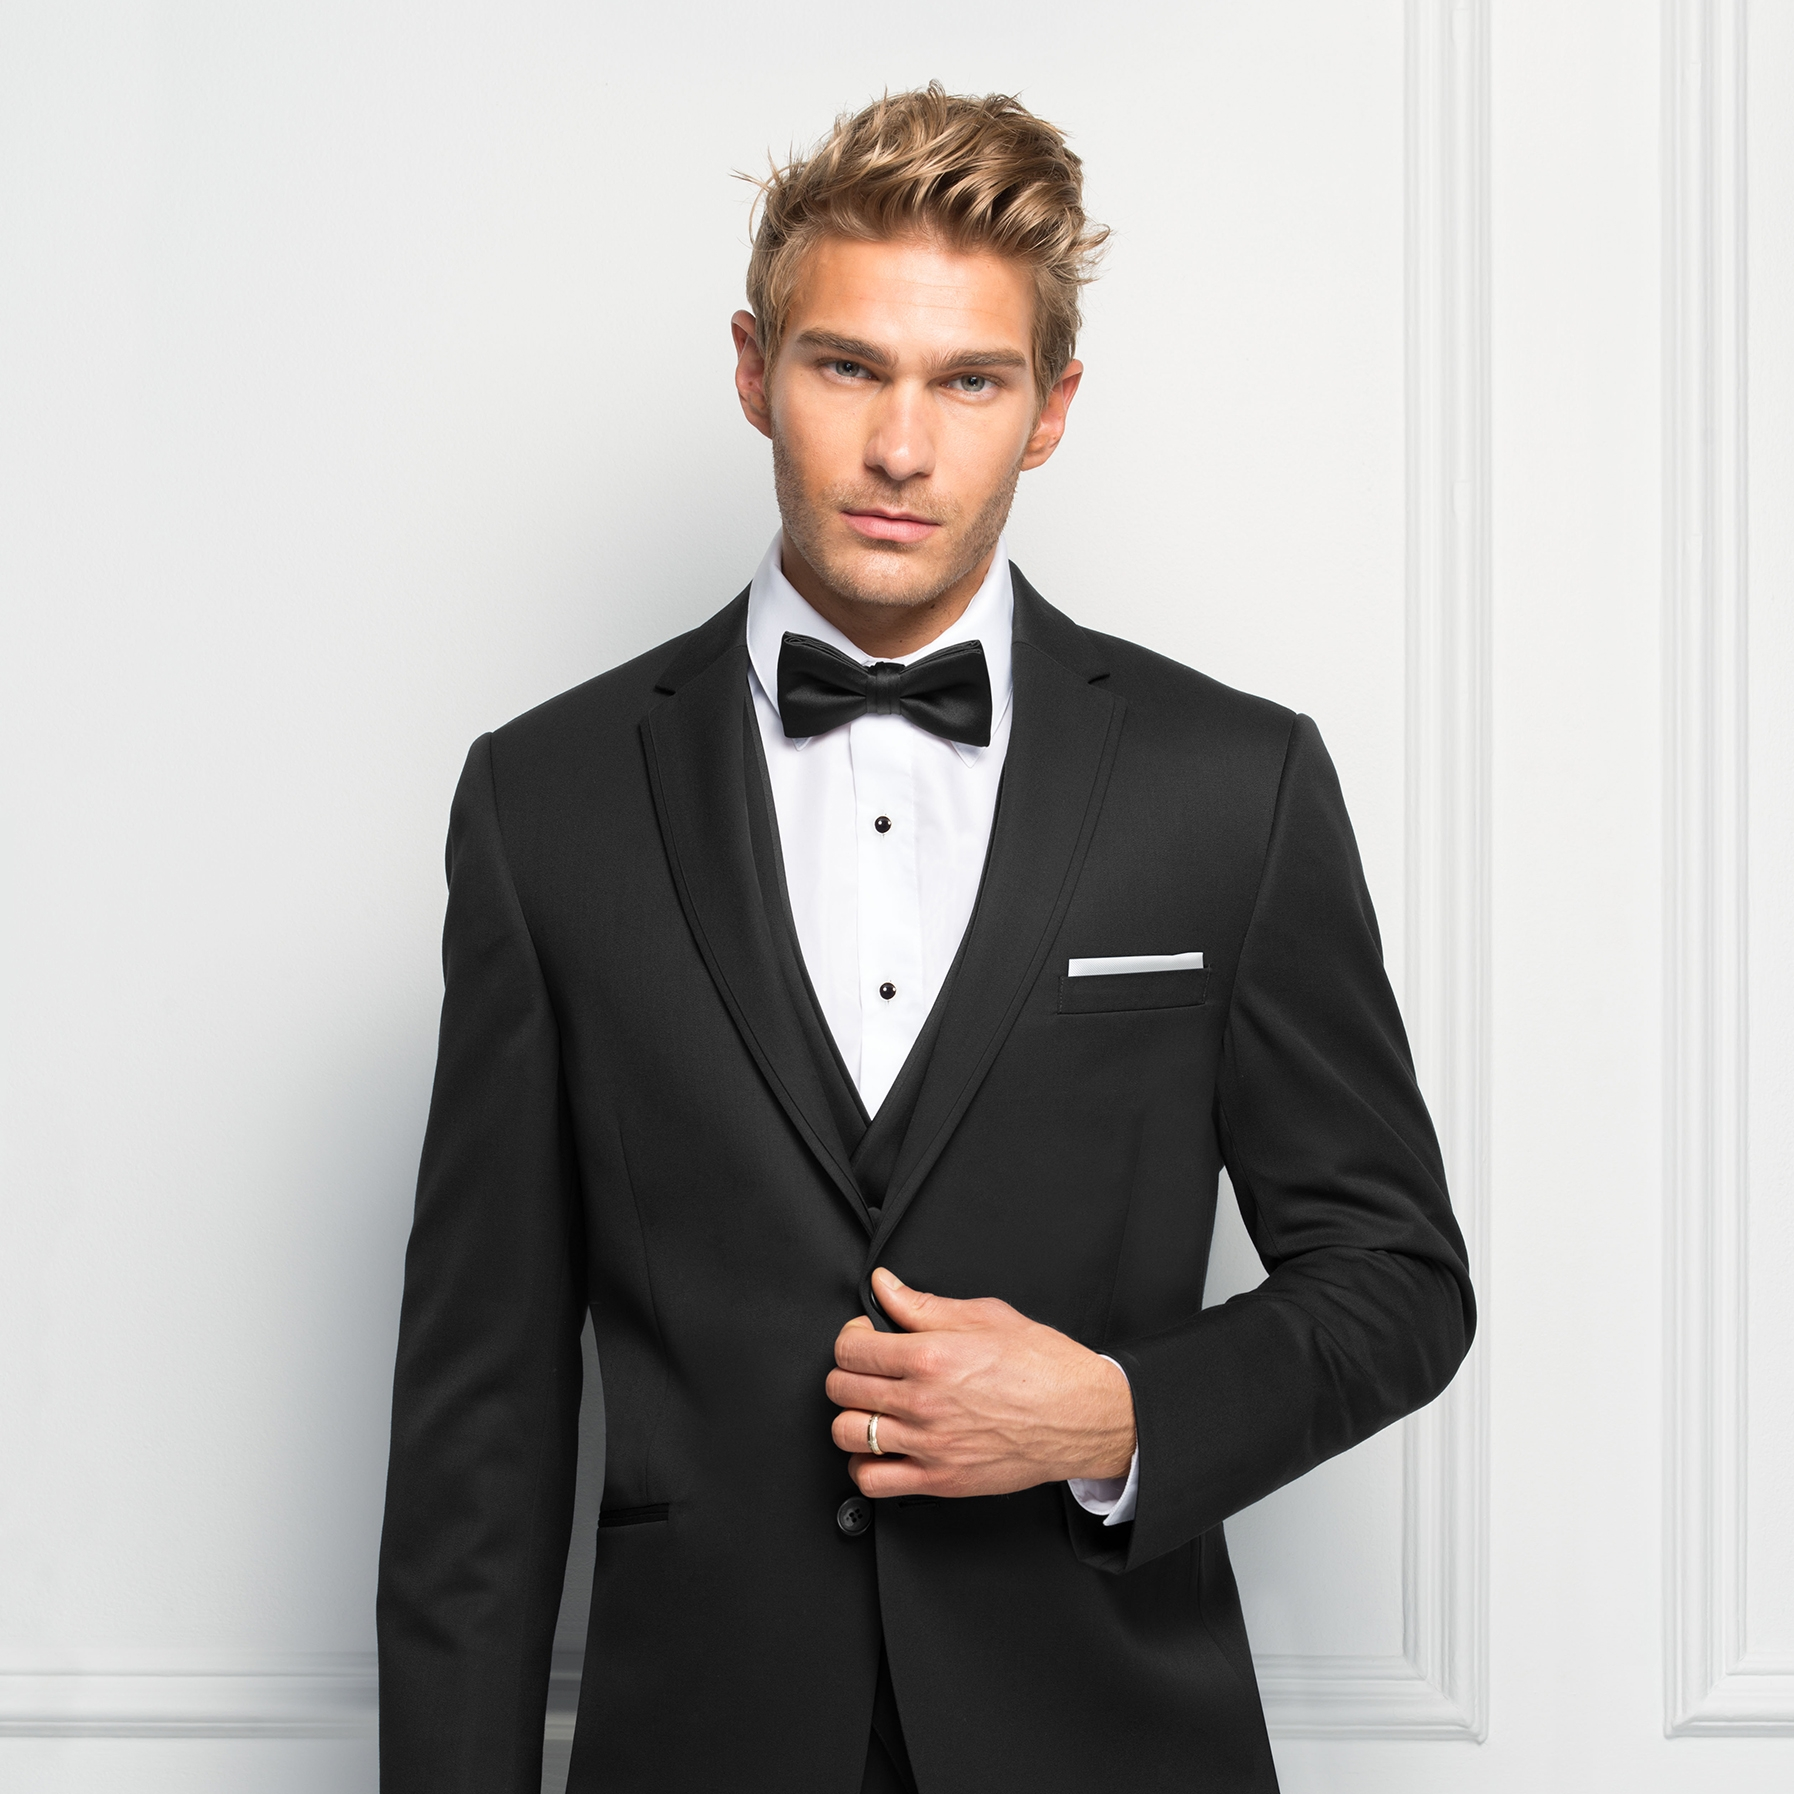 TUXEDOS - With on-trend Ultra Slim Cuts and modern colors, our rentals have your groom's style covered.